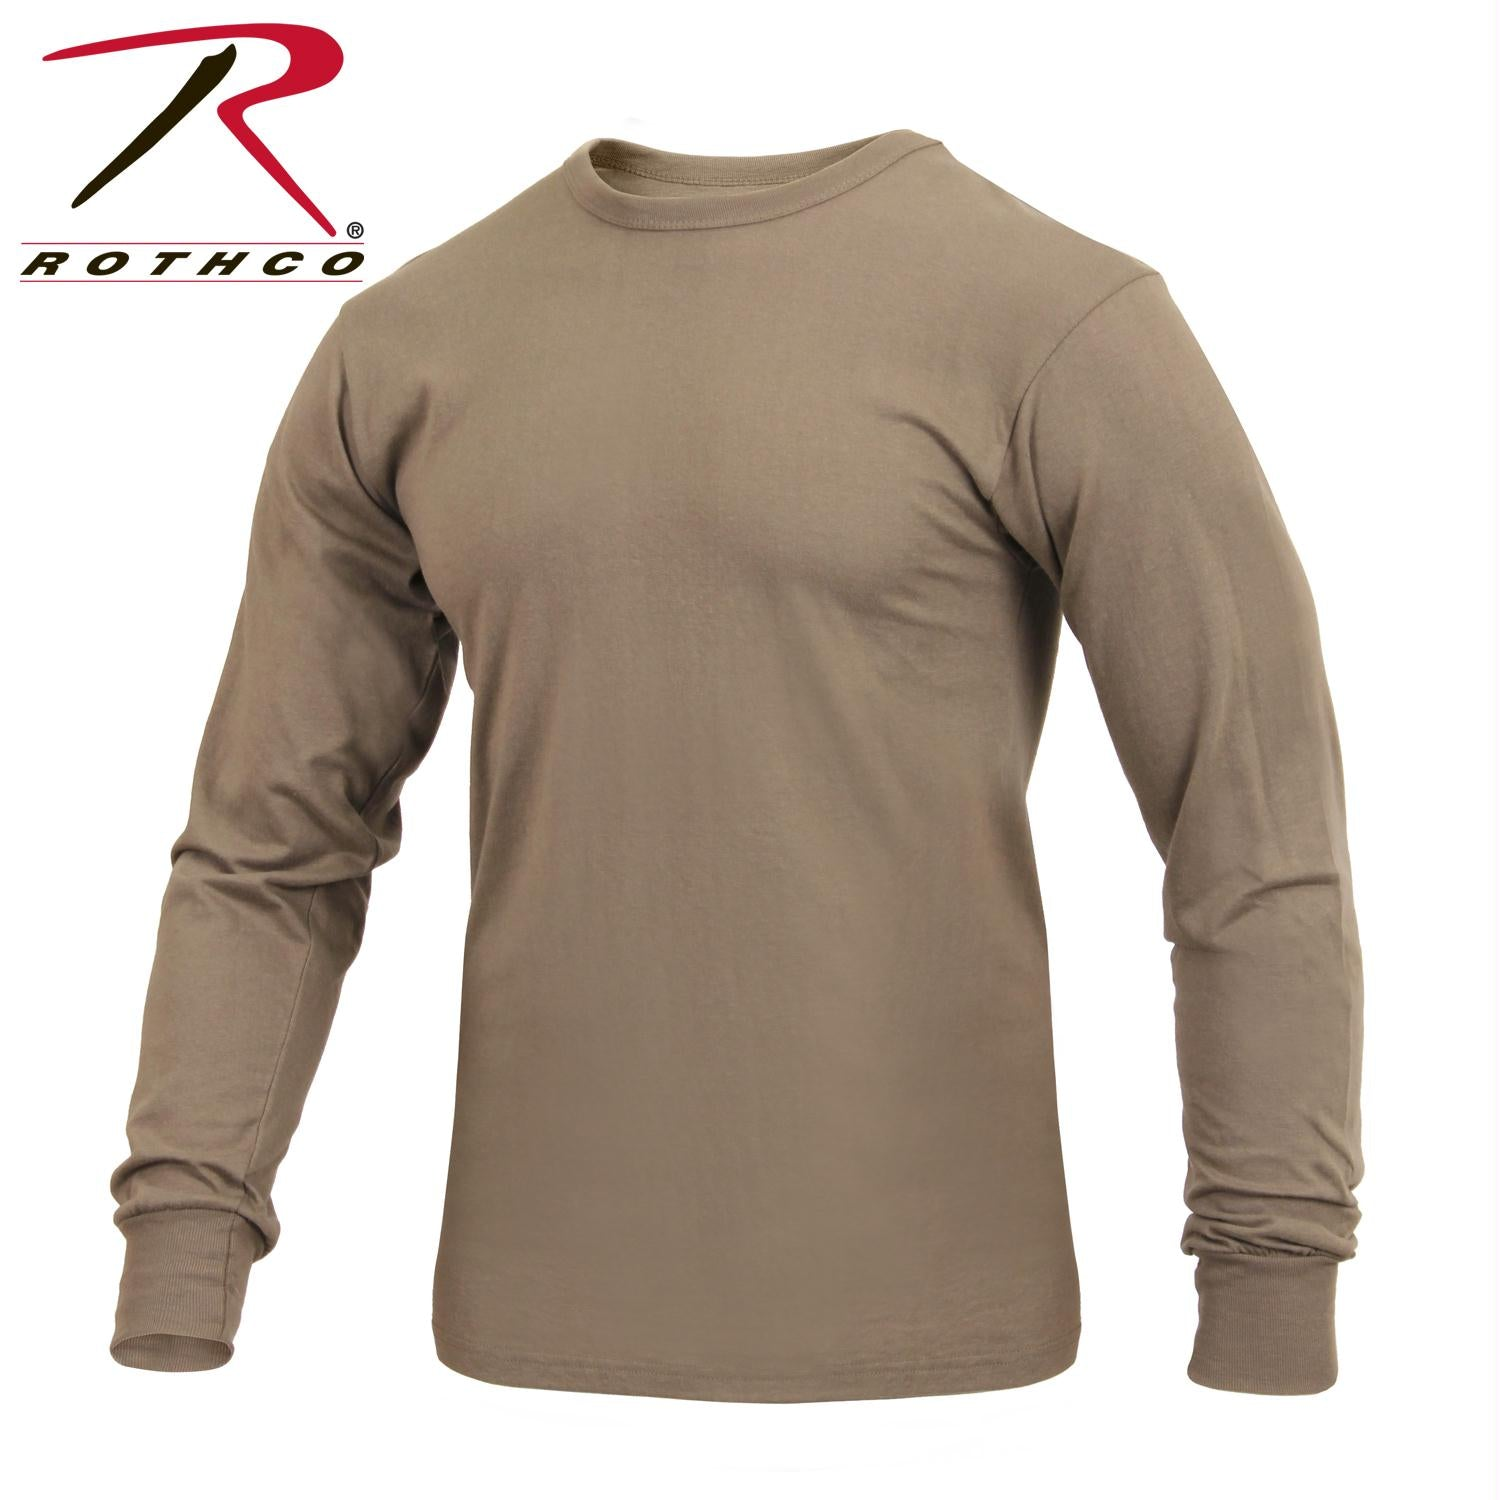 Rothco Long Sleeve Solid T-Shirt - AR 670-1 Coyote Brown / 3XL